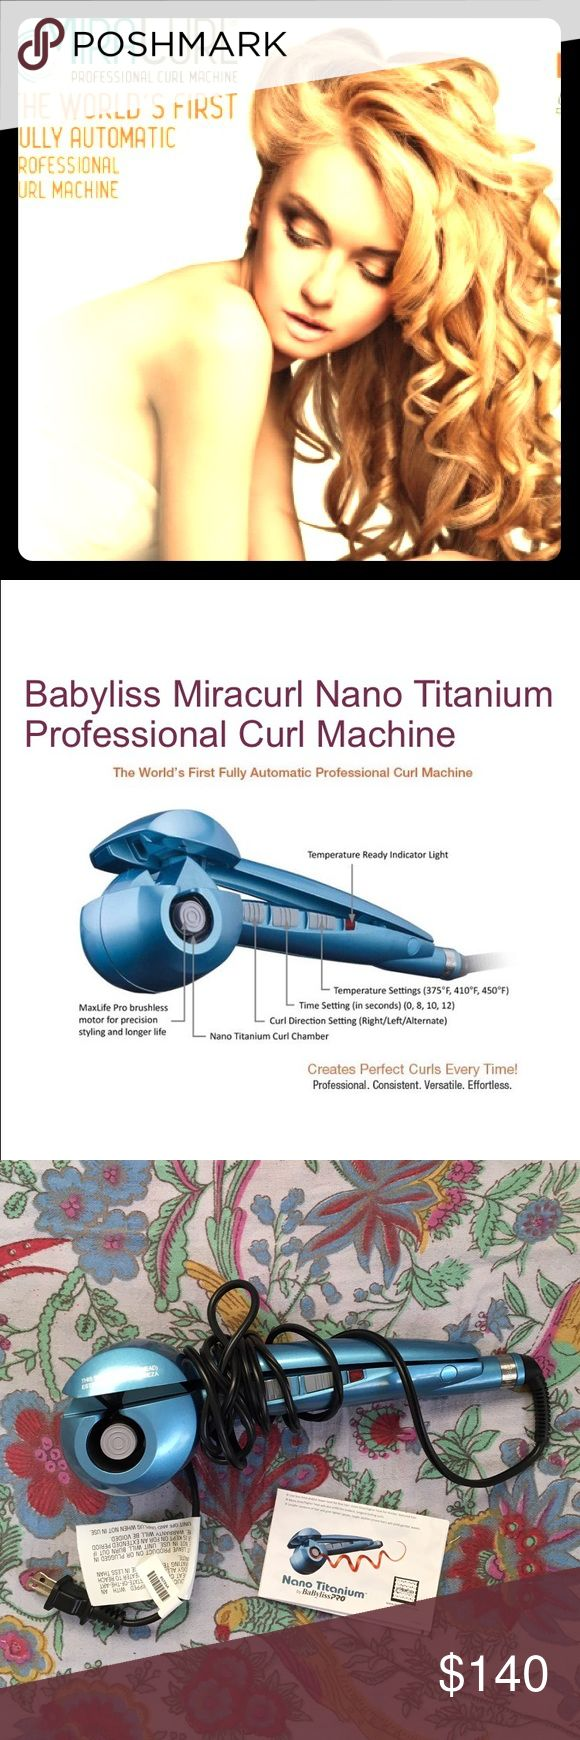 NEW Babyliss PRO MiraCurl Hair curling machine! This new hair curling machine offers the newest in steam technology to give the longest lasting, shiniest, most perfectly formed curls. Not only better curl formation and definition, but literally has 24 HOUR HOLD!😆 Get the smoothest and shiniest curls possible with this genuine Nanotitanium MiraCurl machine by Babyliss PRO. Used only two times! See other fabulous new MiraCurl styling products in my closet as well! Babyliss MiraCurl PRO Other